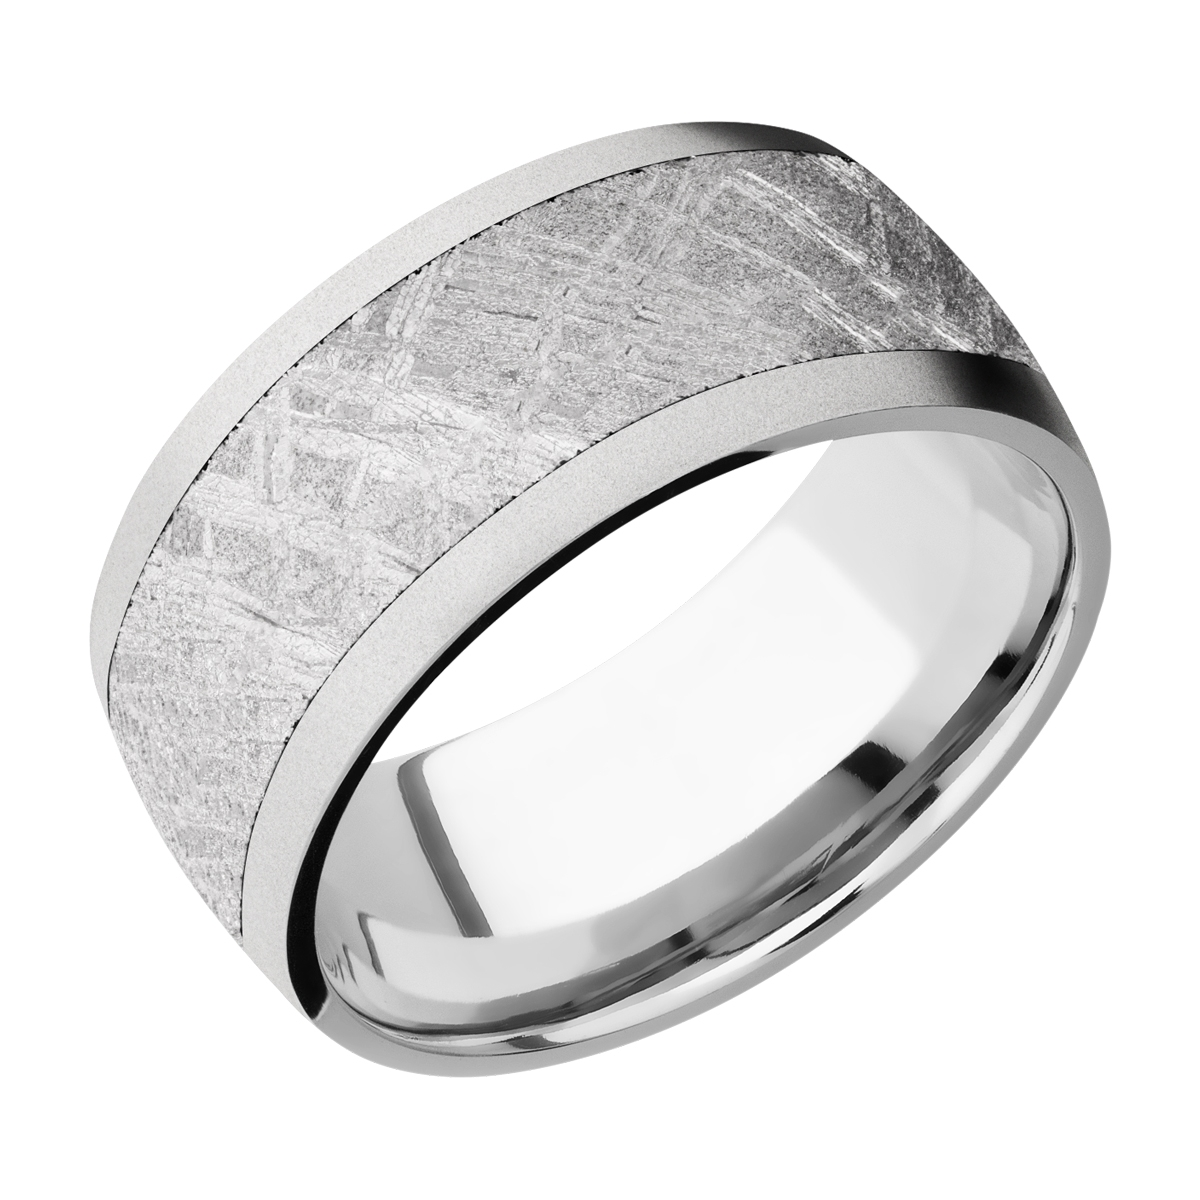 Lashbrook CC10D17/METEORITE Cobalt Chrome Wedding Ring or Band